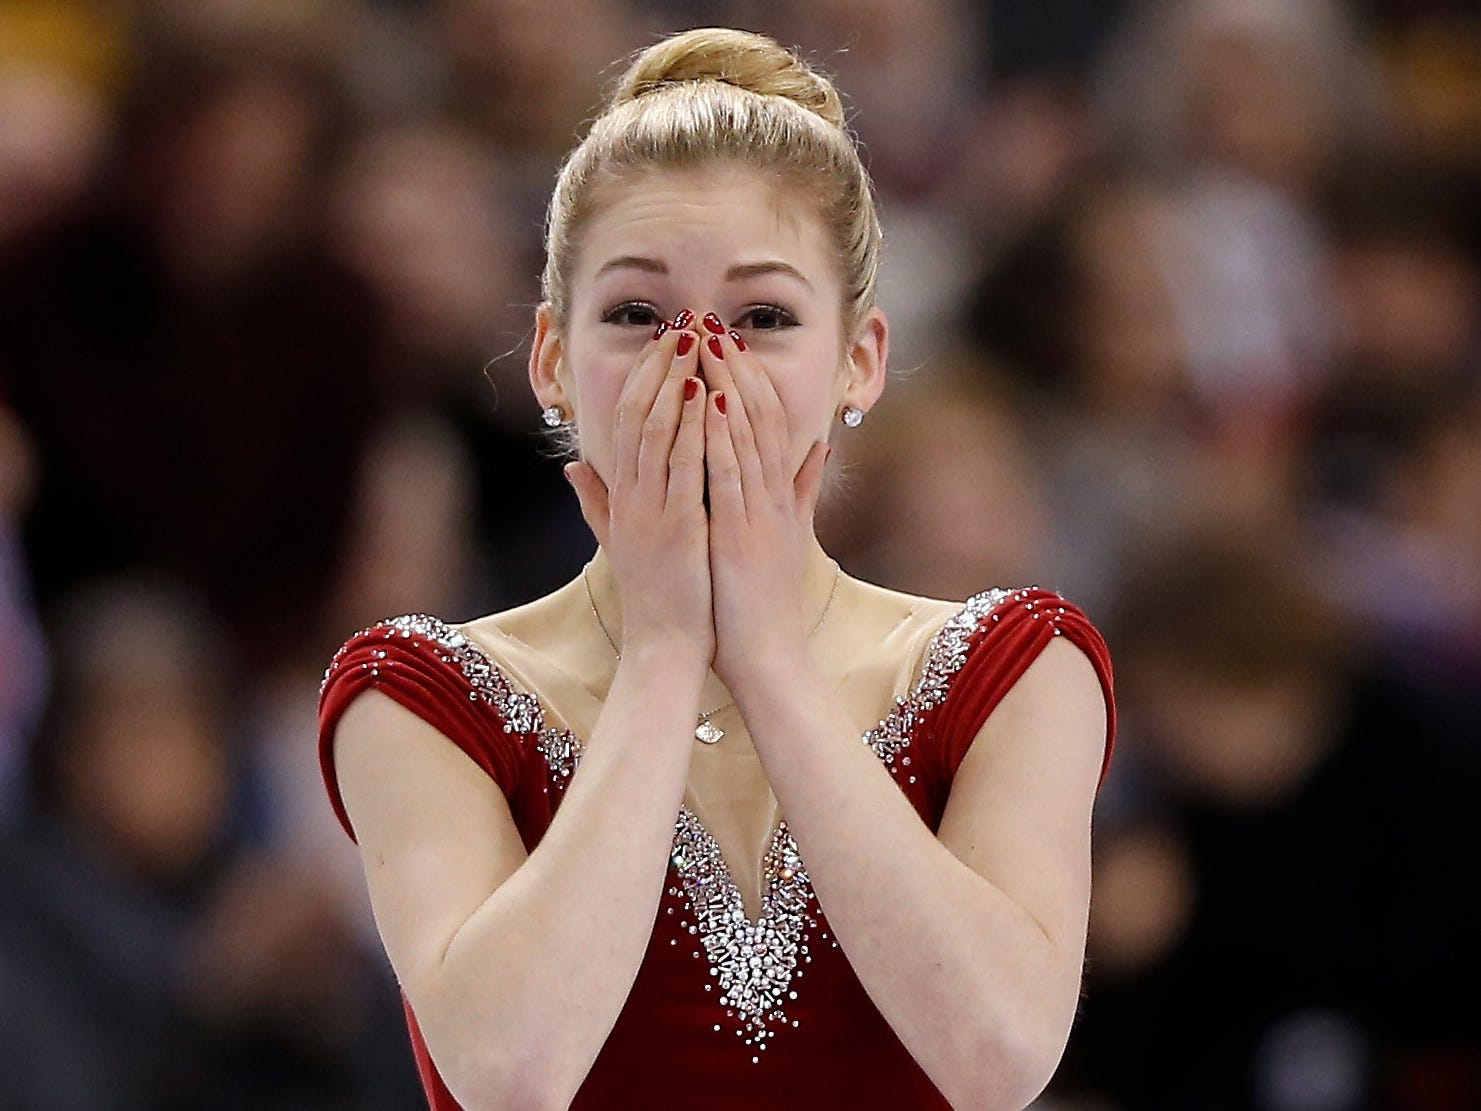 In January 2014, Gracie Gold won her first national title at the senior level, at TD Garden. She was 18.